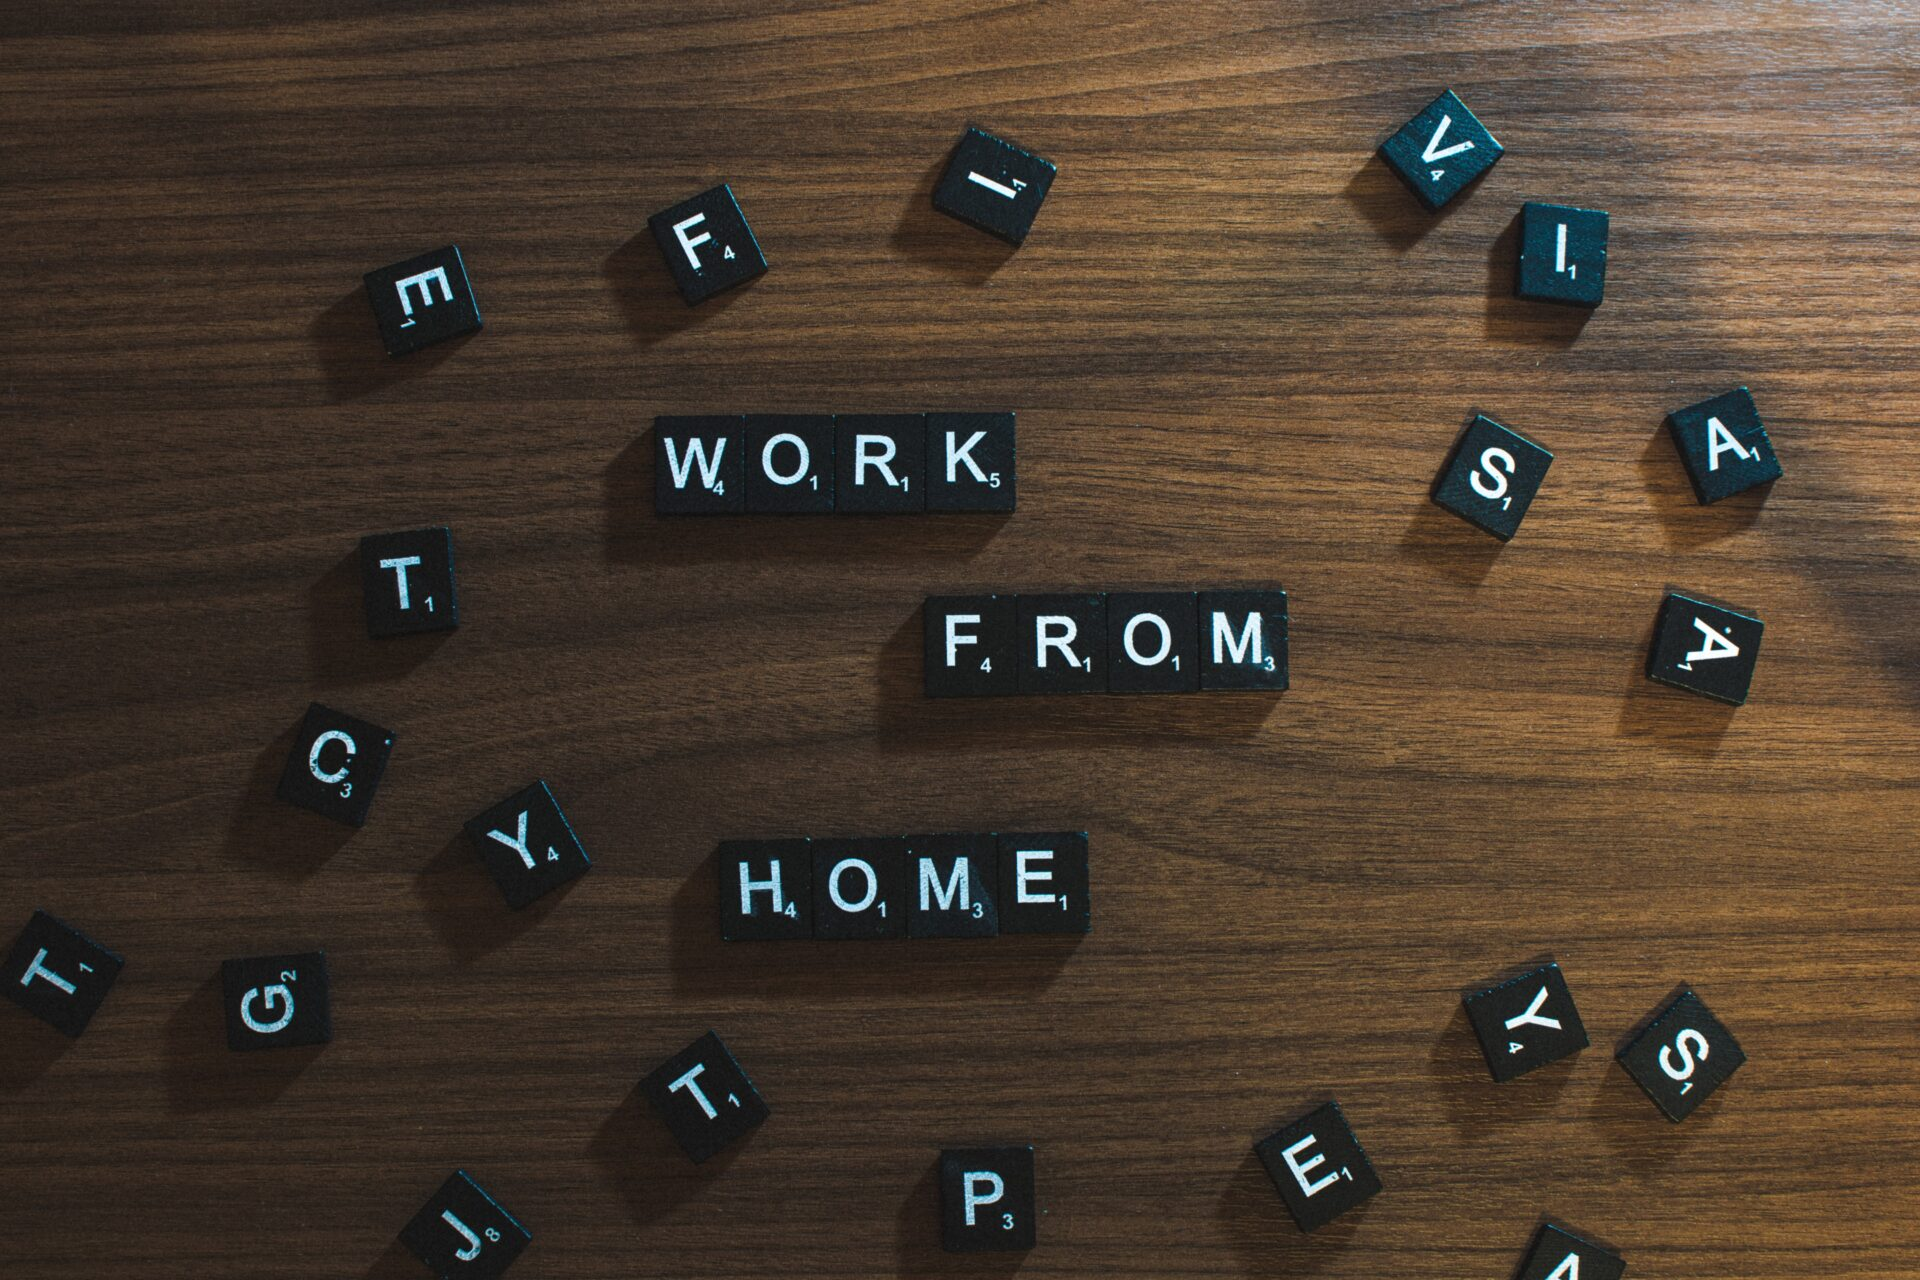 Establishing Norms During Sustained Remote Work